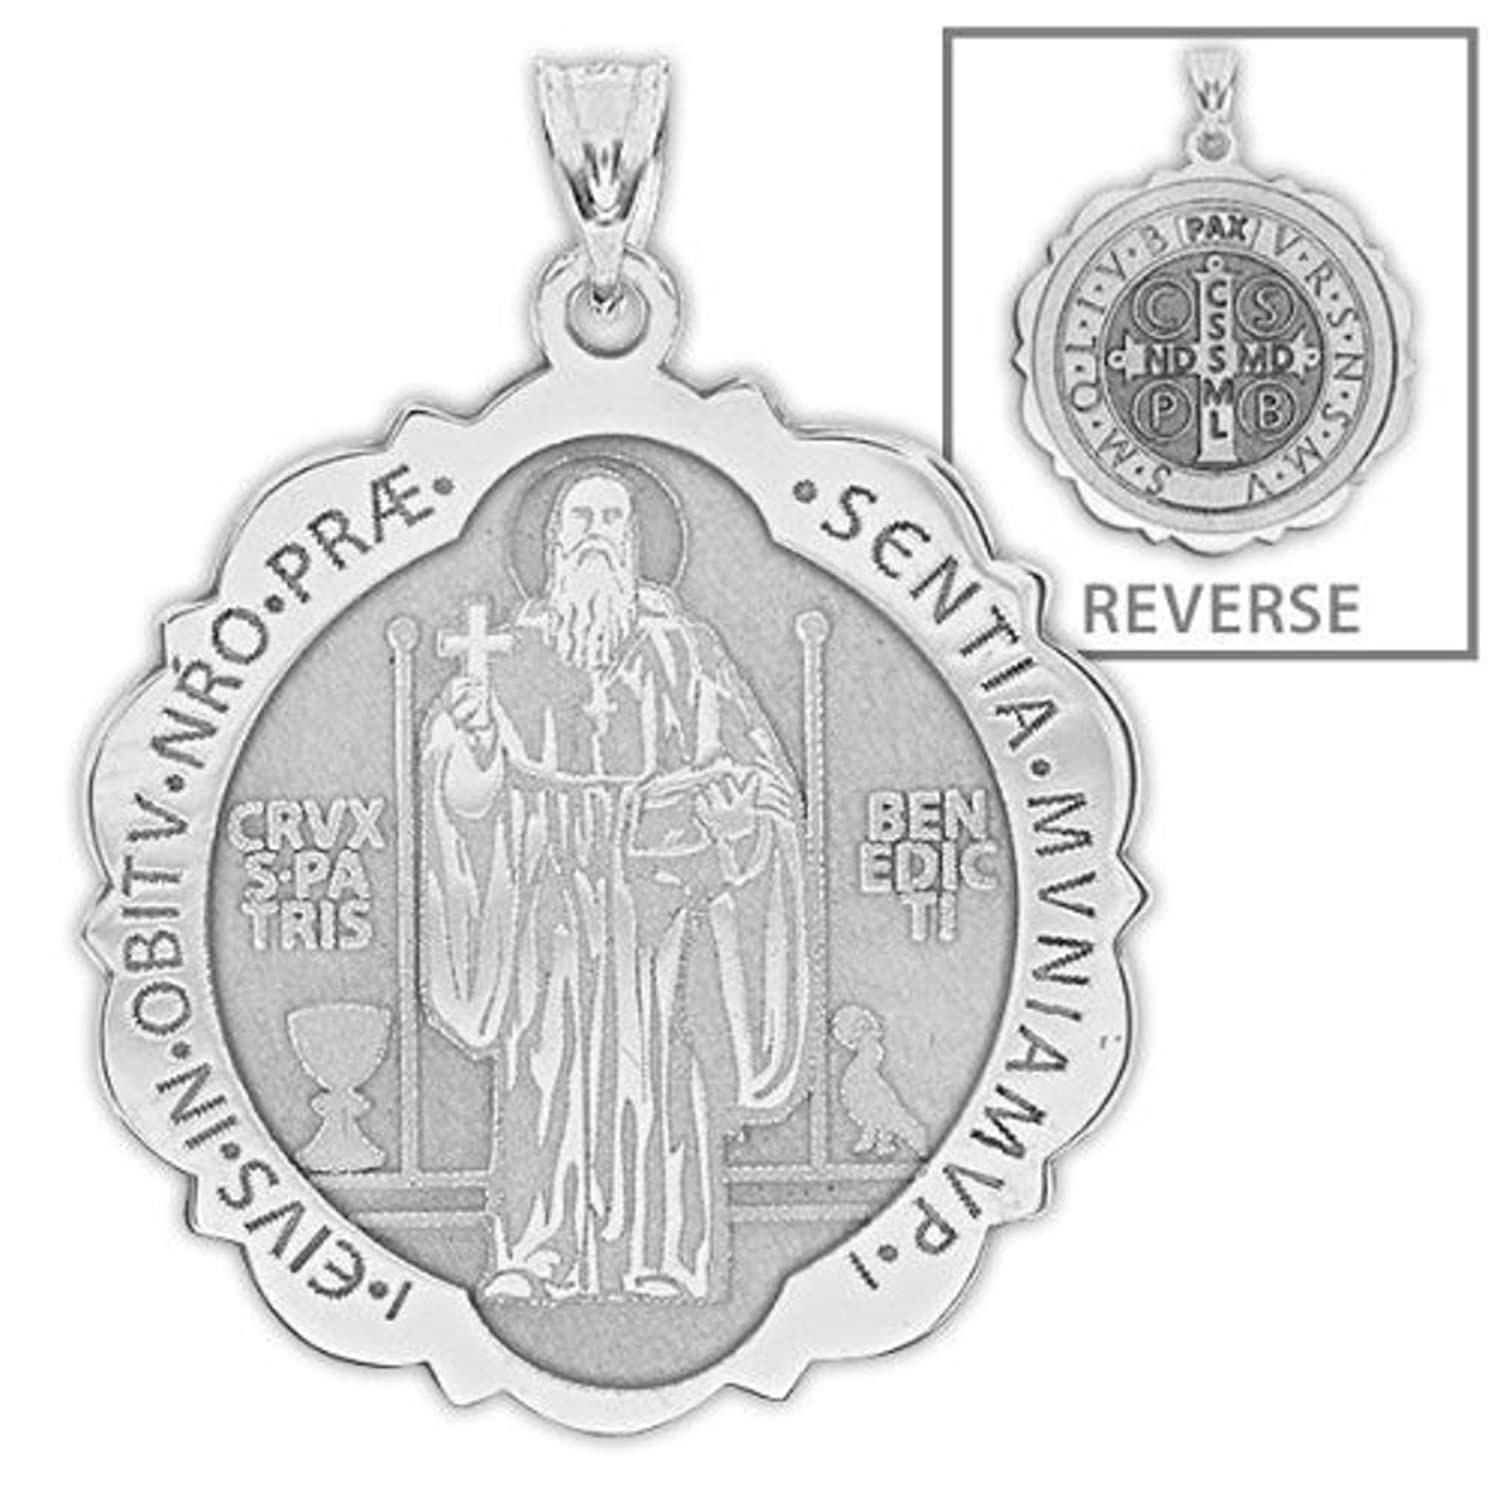 Saint Benedict Scalloped Round Religious Medal - 1 Inch Size of a Quarter - Sterling Silver